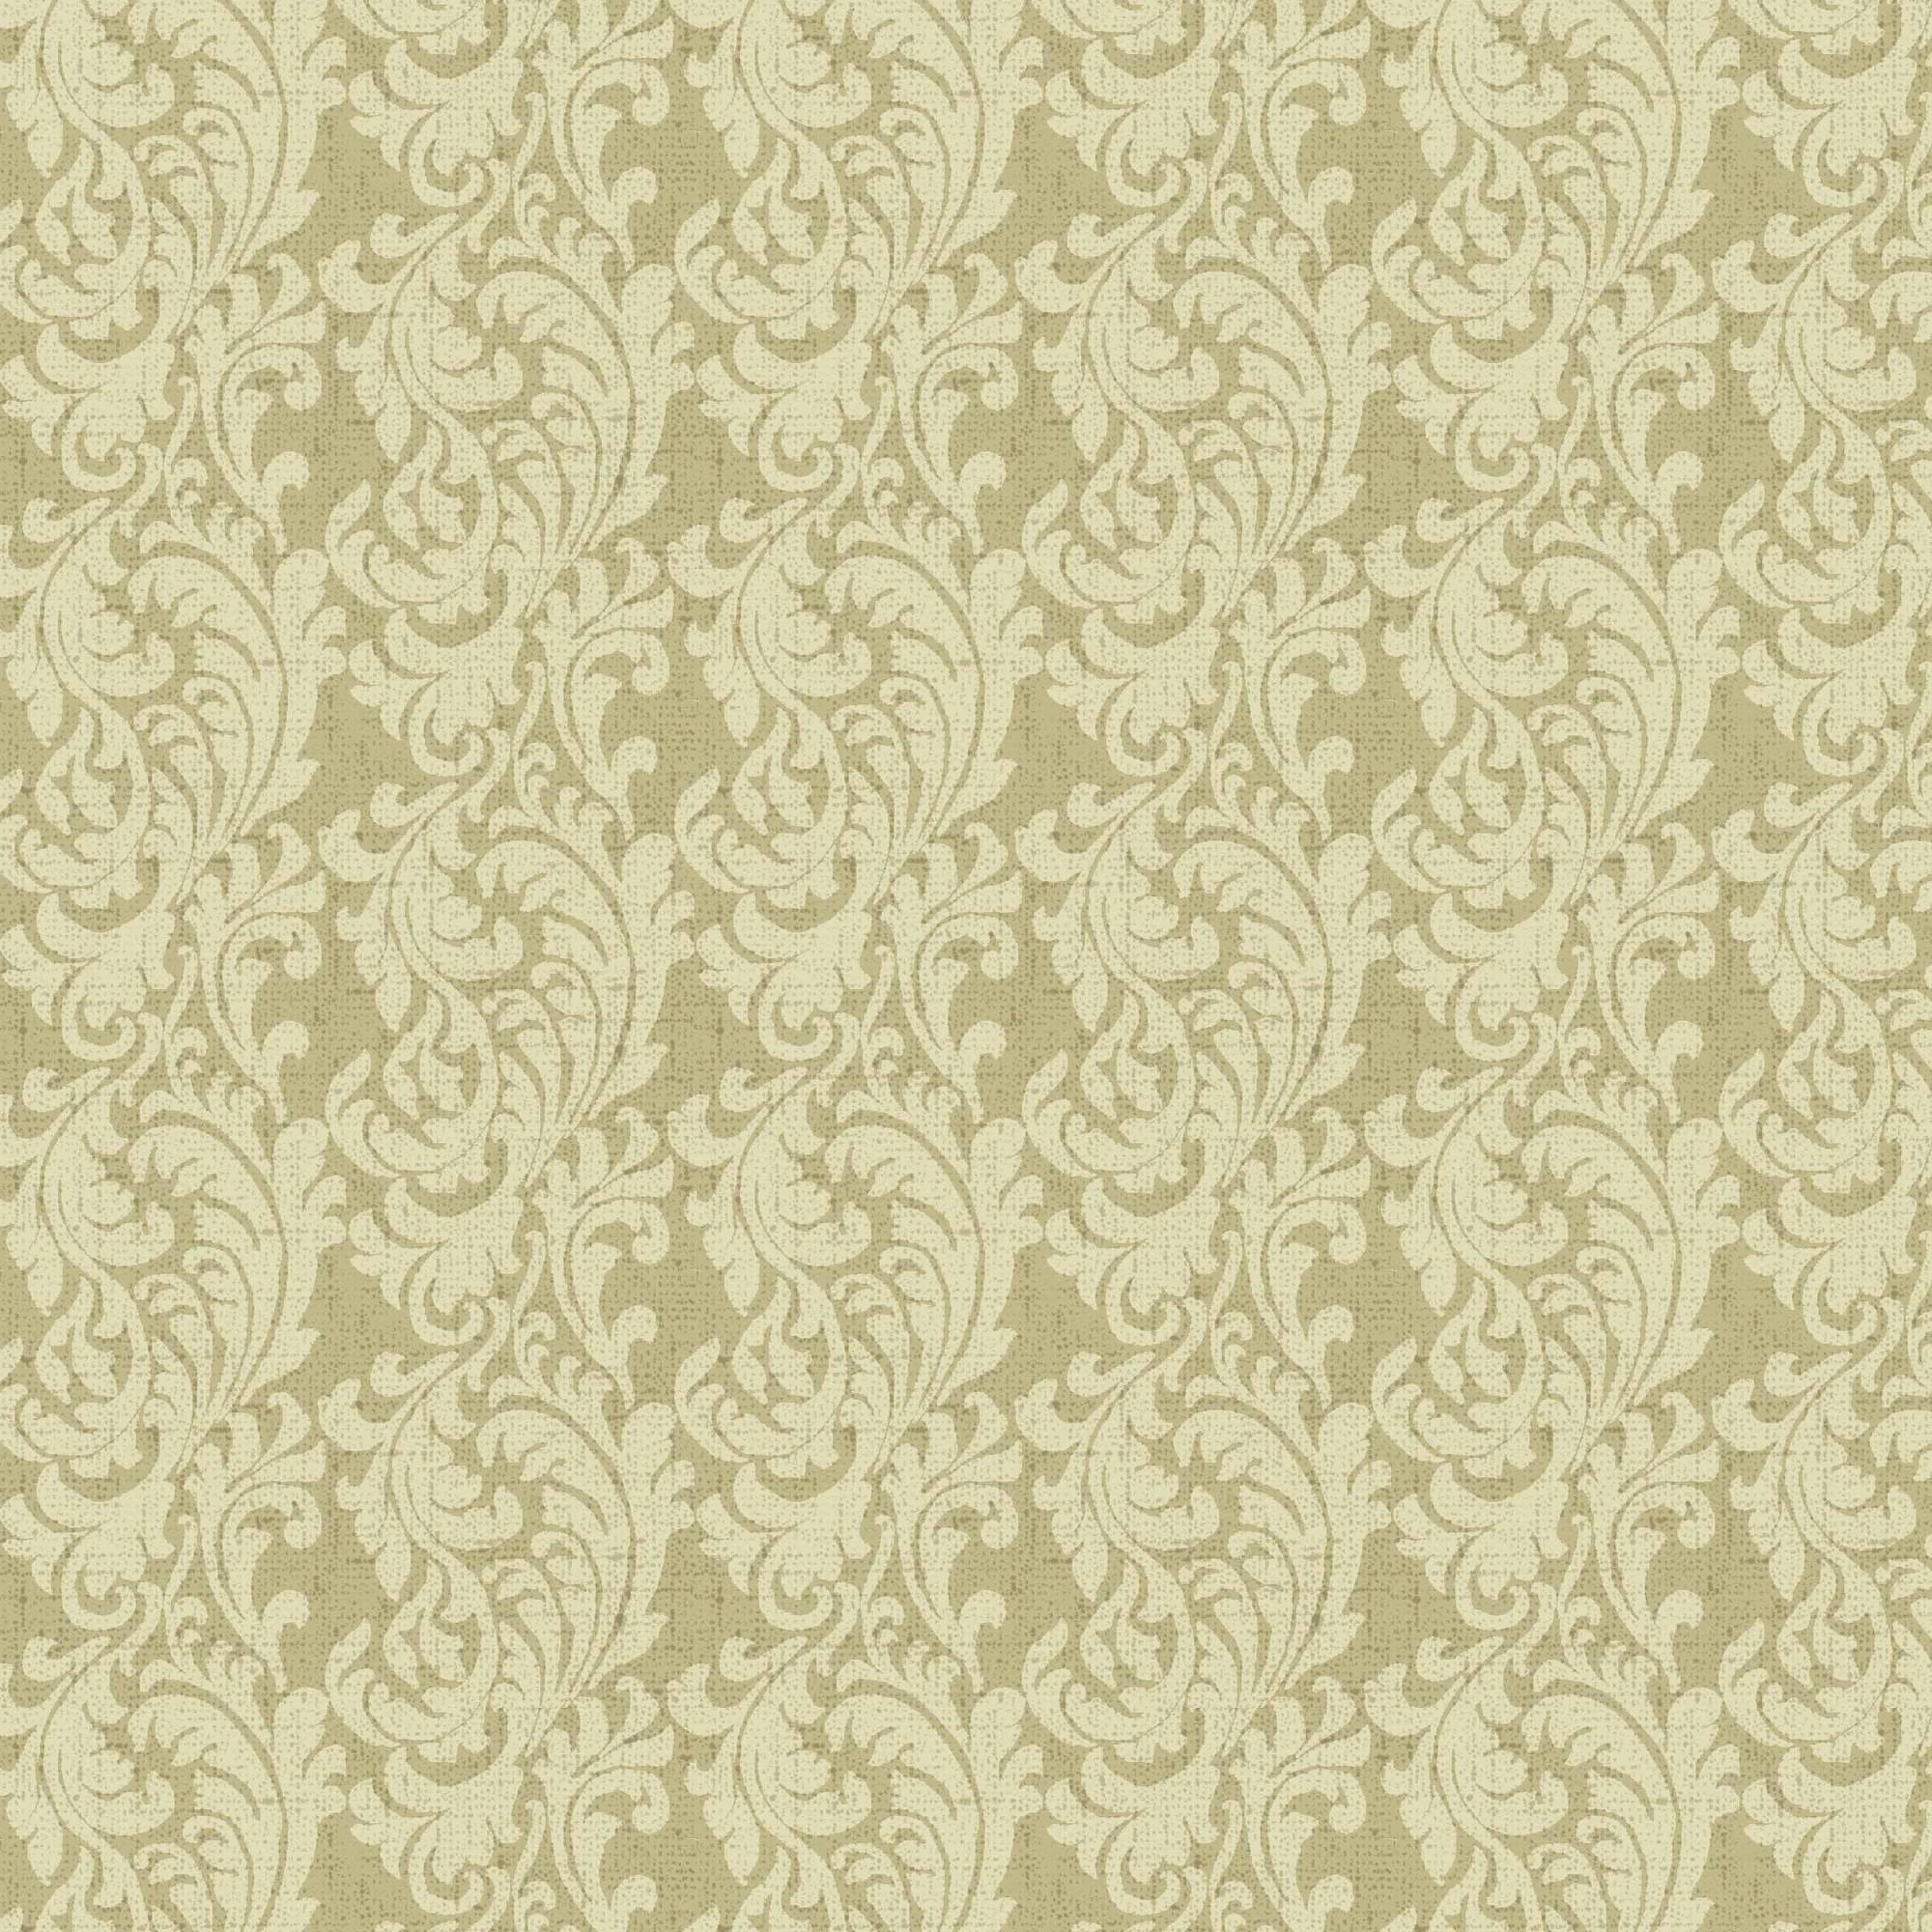 Waverly Inspirations 100% Cotton duck fabric, Quilting fabric, Home Decor ,54'', 220GSM